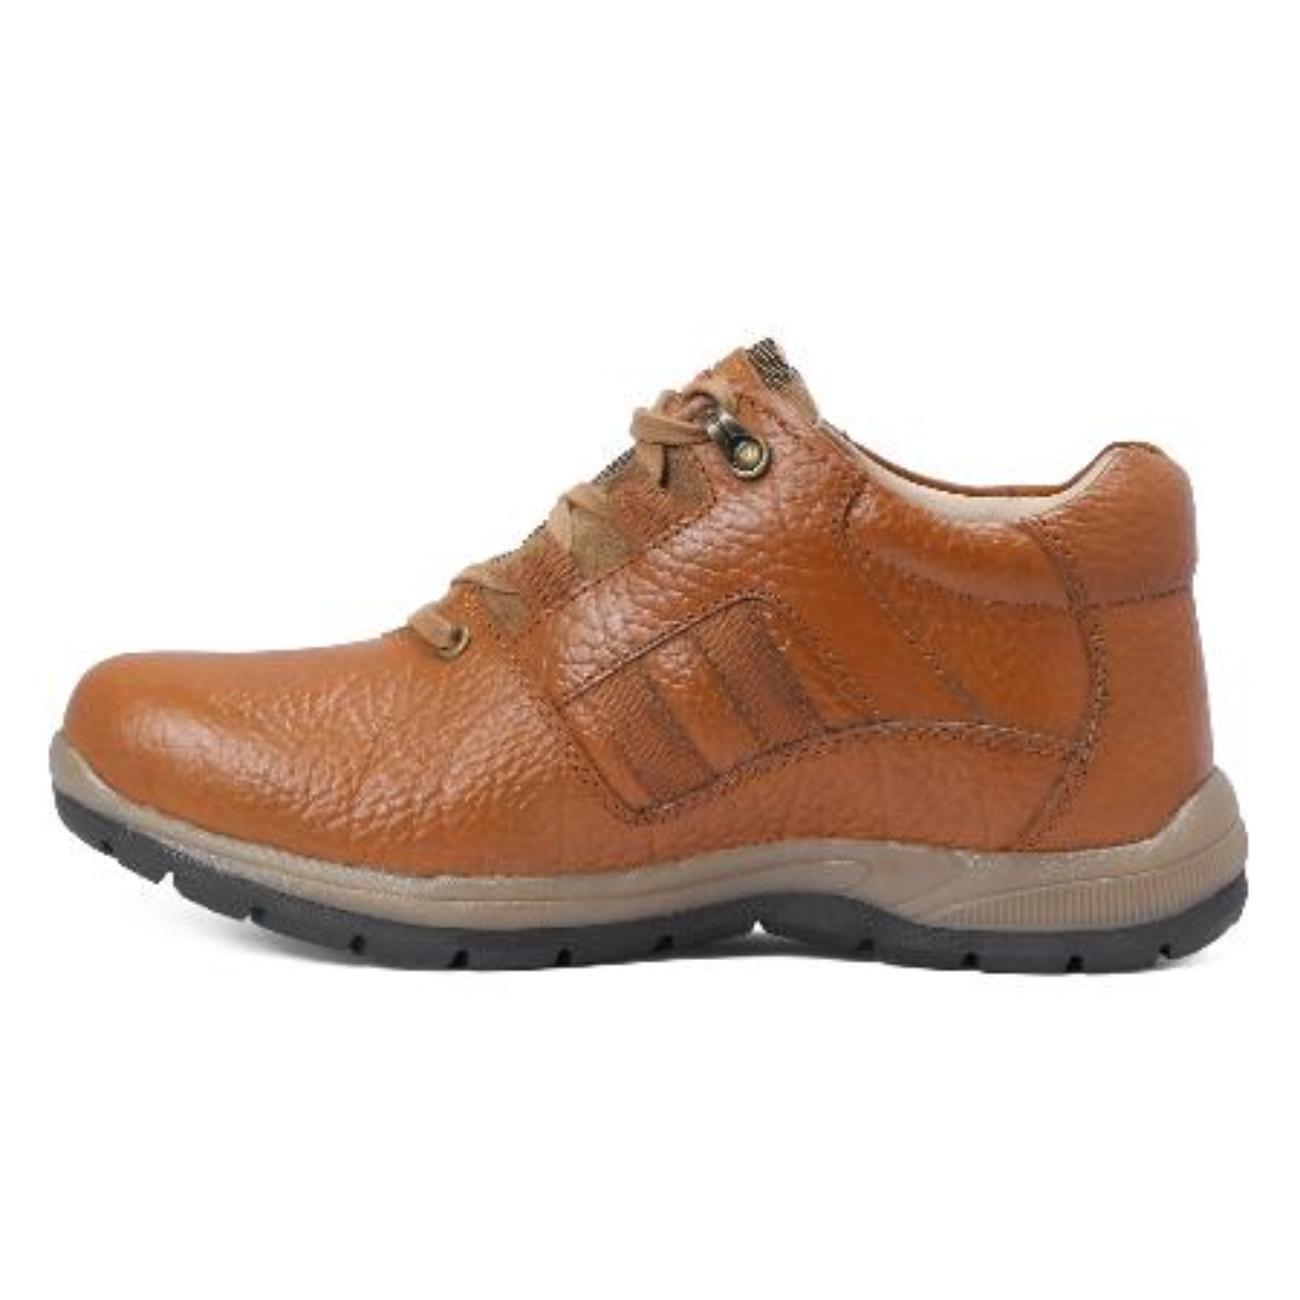 low ankle elephant tan casual leather shoes side view_2